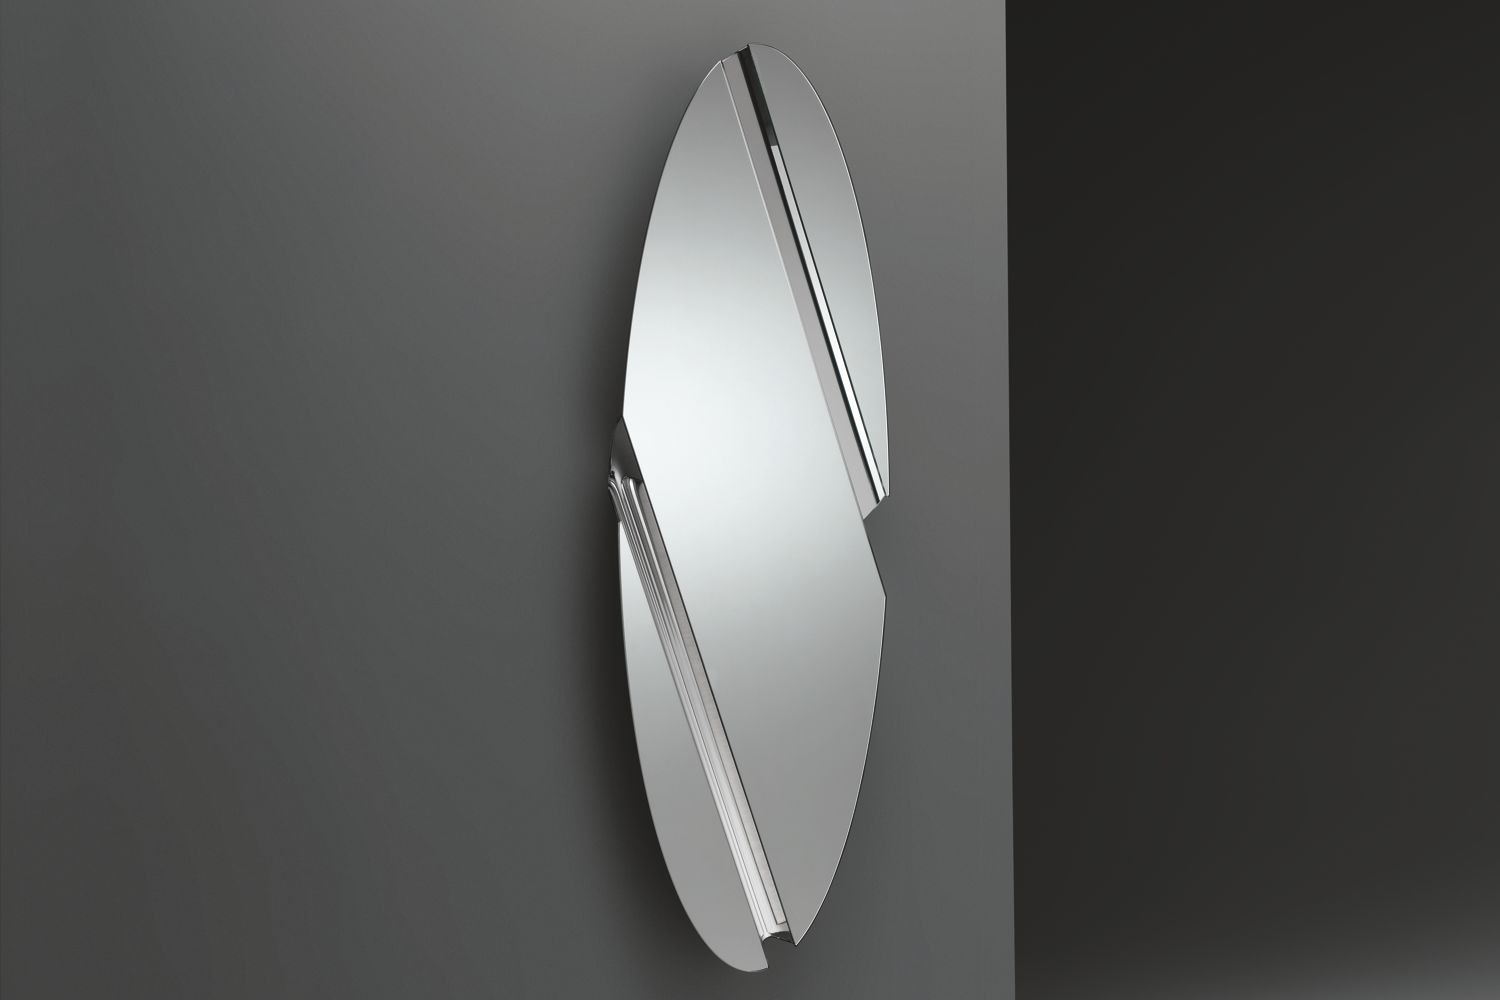 The Wing Elliptical Hanging Mirror